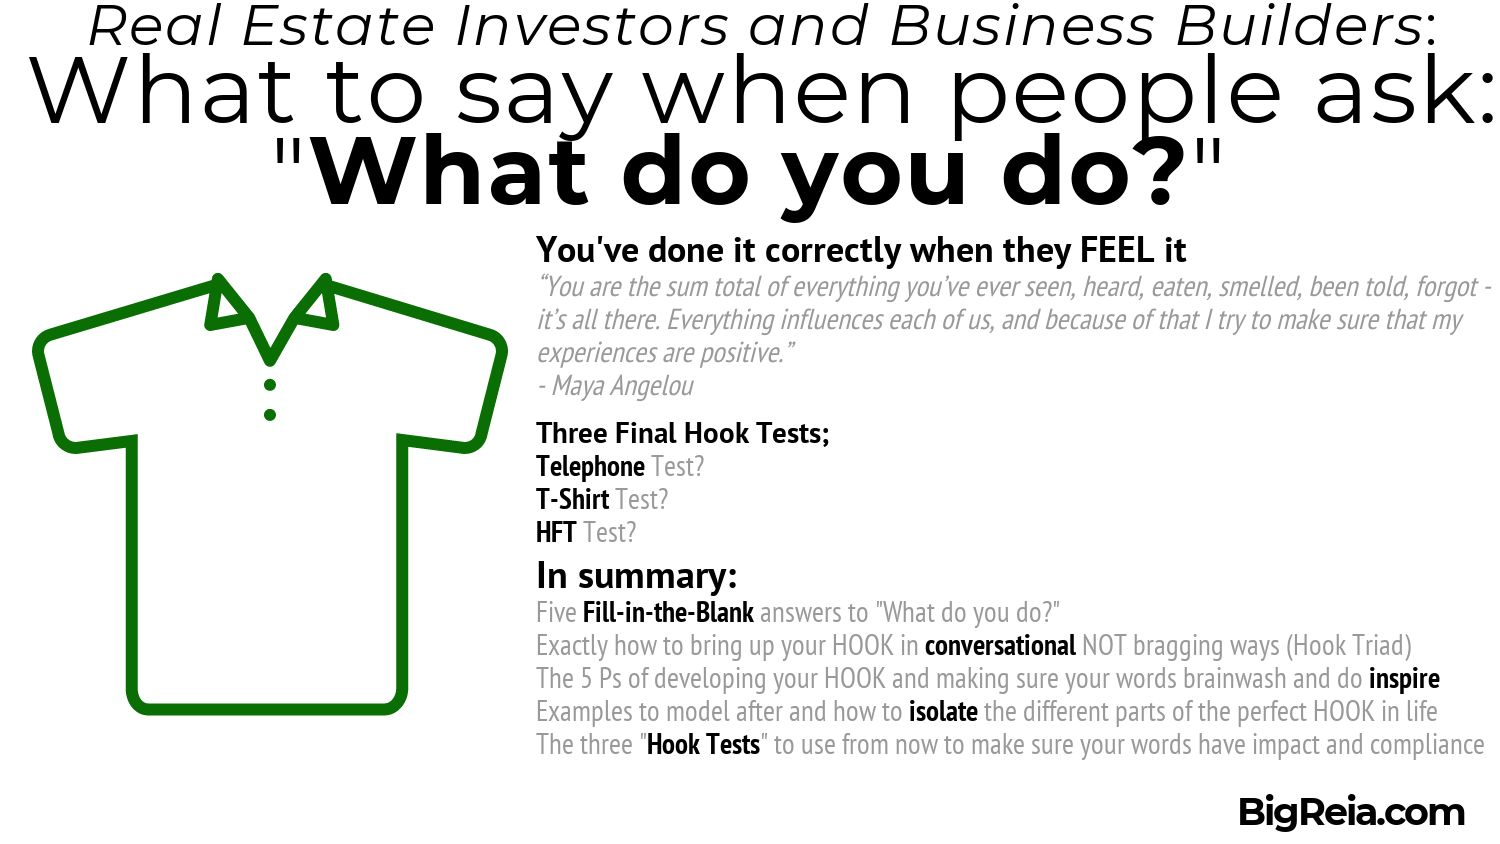 Three Hook Tests to make sure you are saying it right with impact